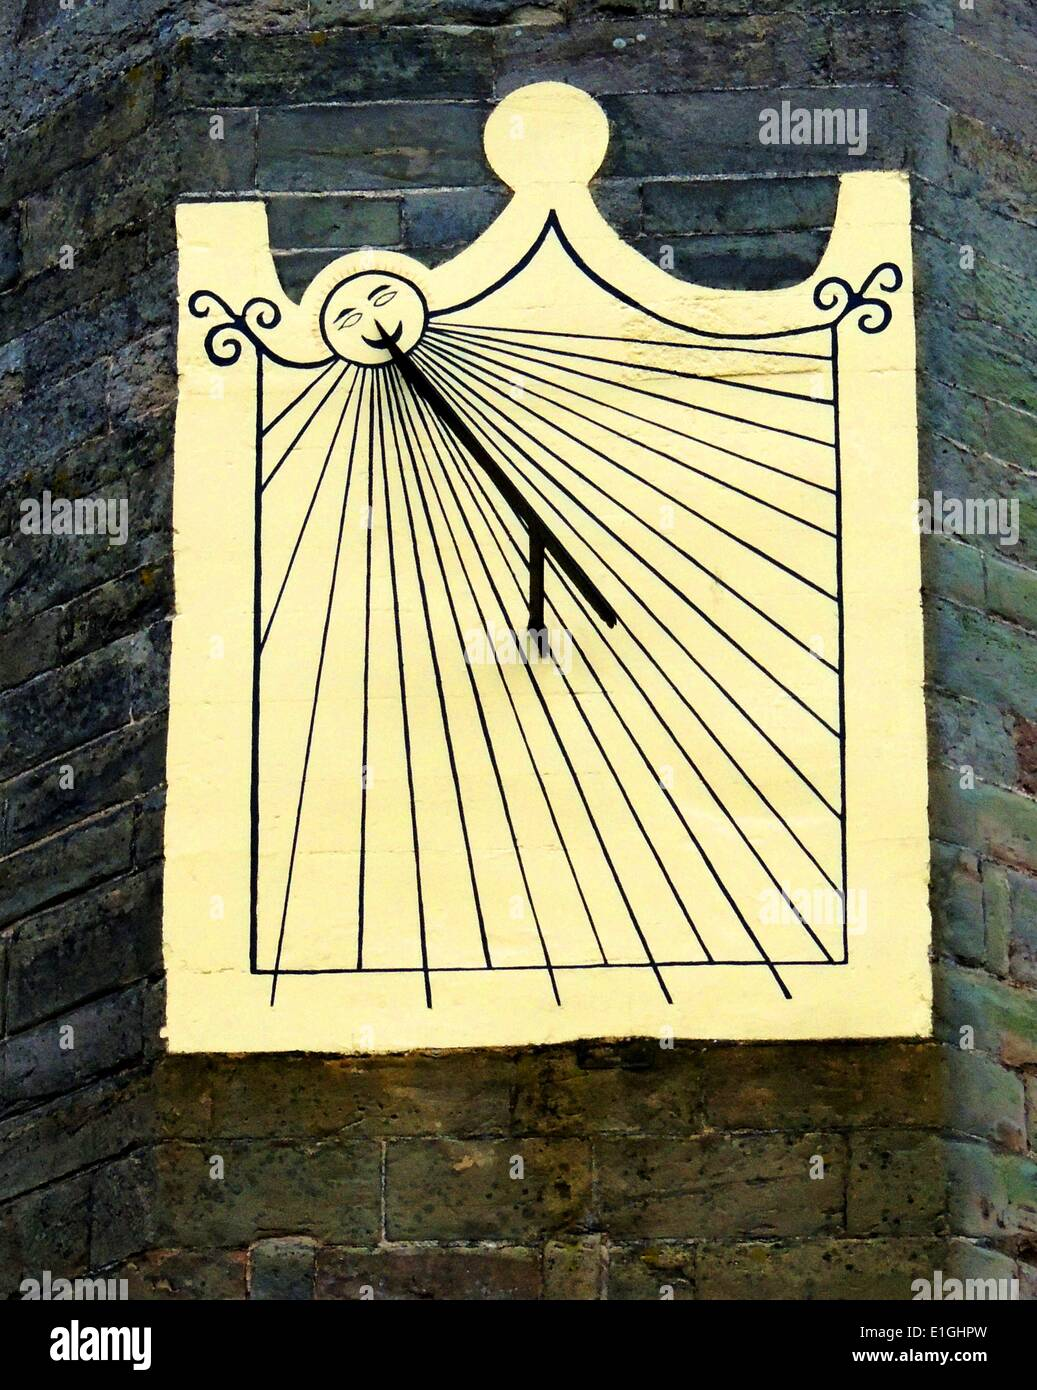 Sundial mounted on the entrance tower at Warwick Castle, England. - Stock Image